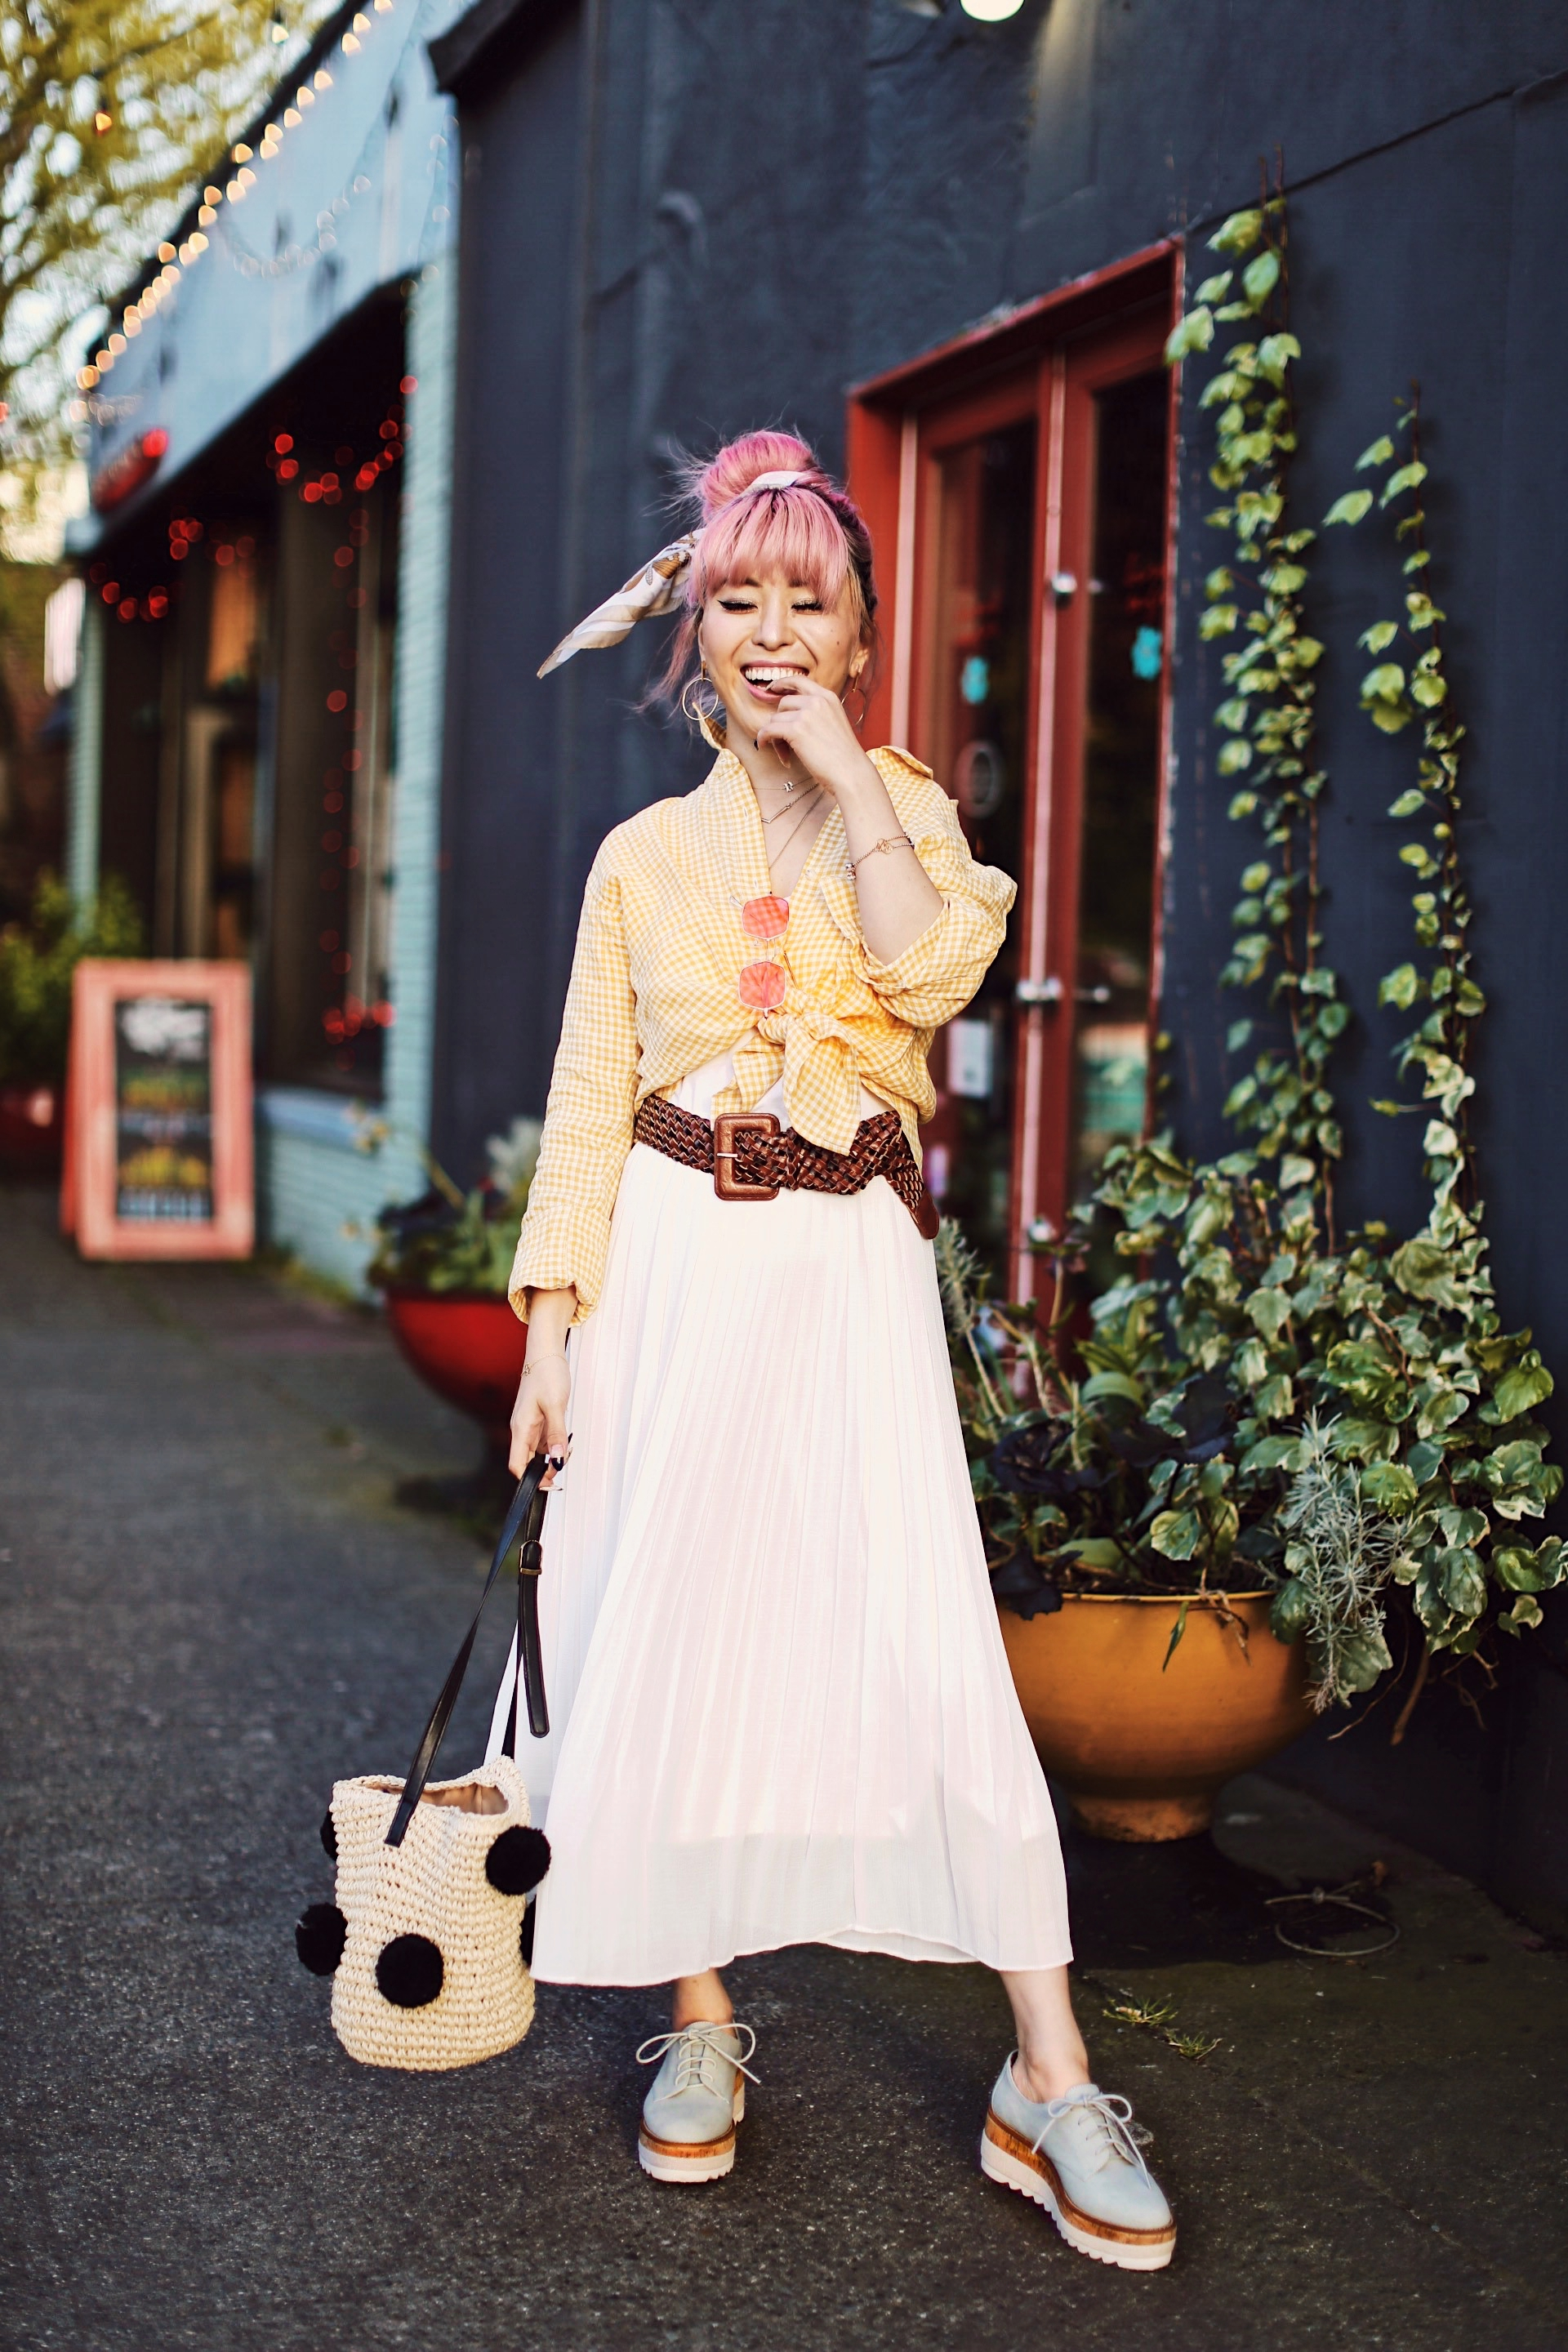 Uniqlo yellow Linen gingham shirt-Uniqlo White pleated chiffon midi skirt-Uniqlo Airism brat-pink tinted sunglasses ZERO UV-She in Pom pom Straw bucket bag-Vintage scarf bun hair style-Steve Madden Belt-Jane and the shoe denim oxford platforms-Aika's Love Closet-seattle fashion style blogger-Japanese-pink hair-smiling-spring fashion 7